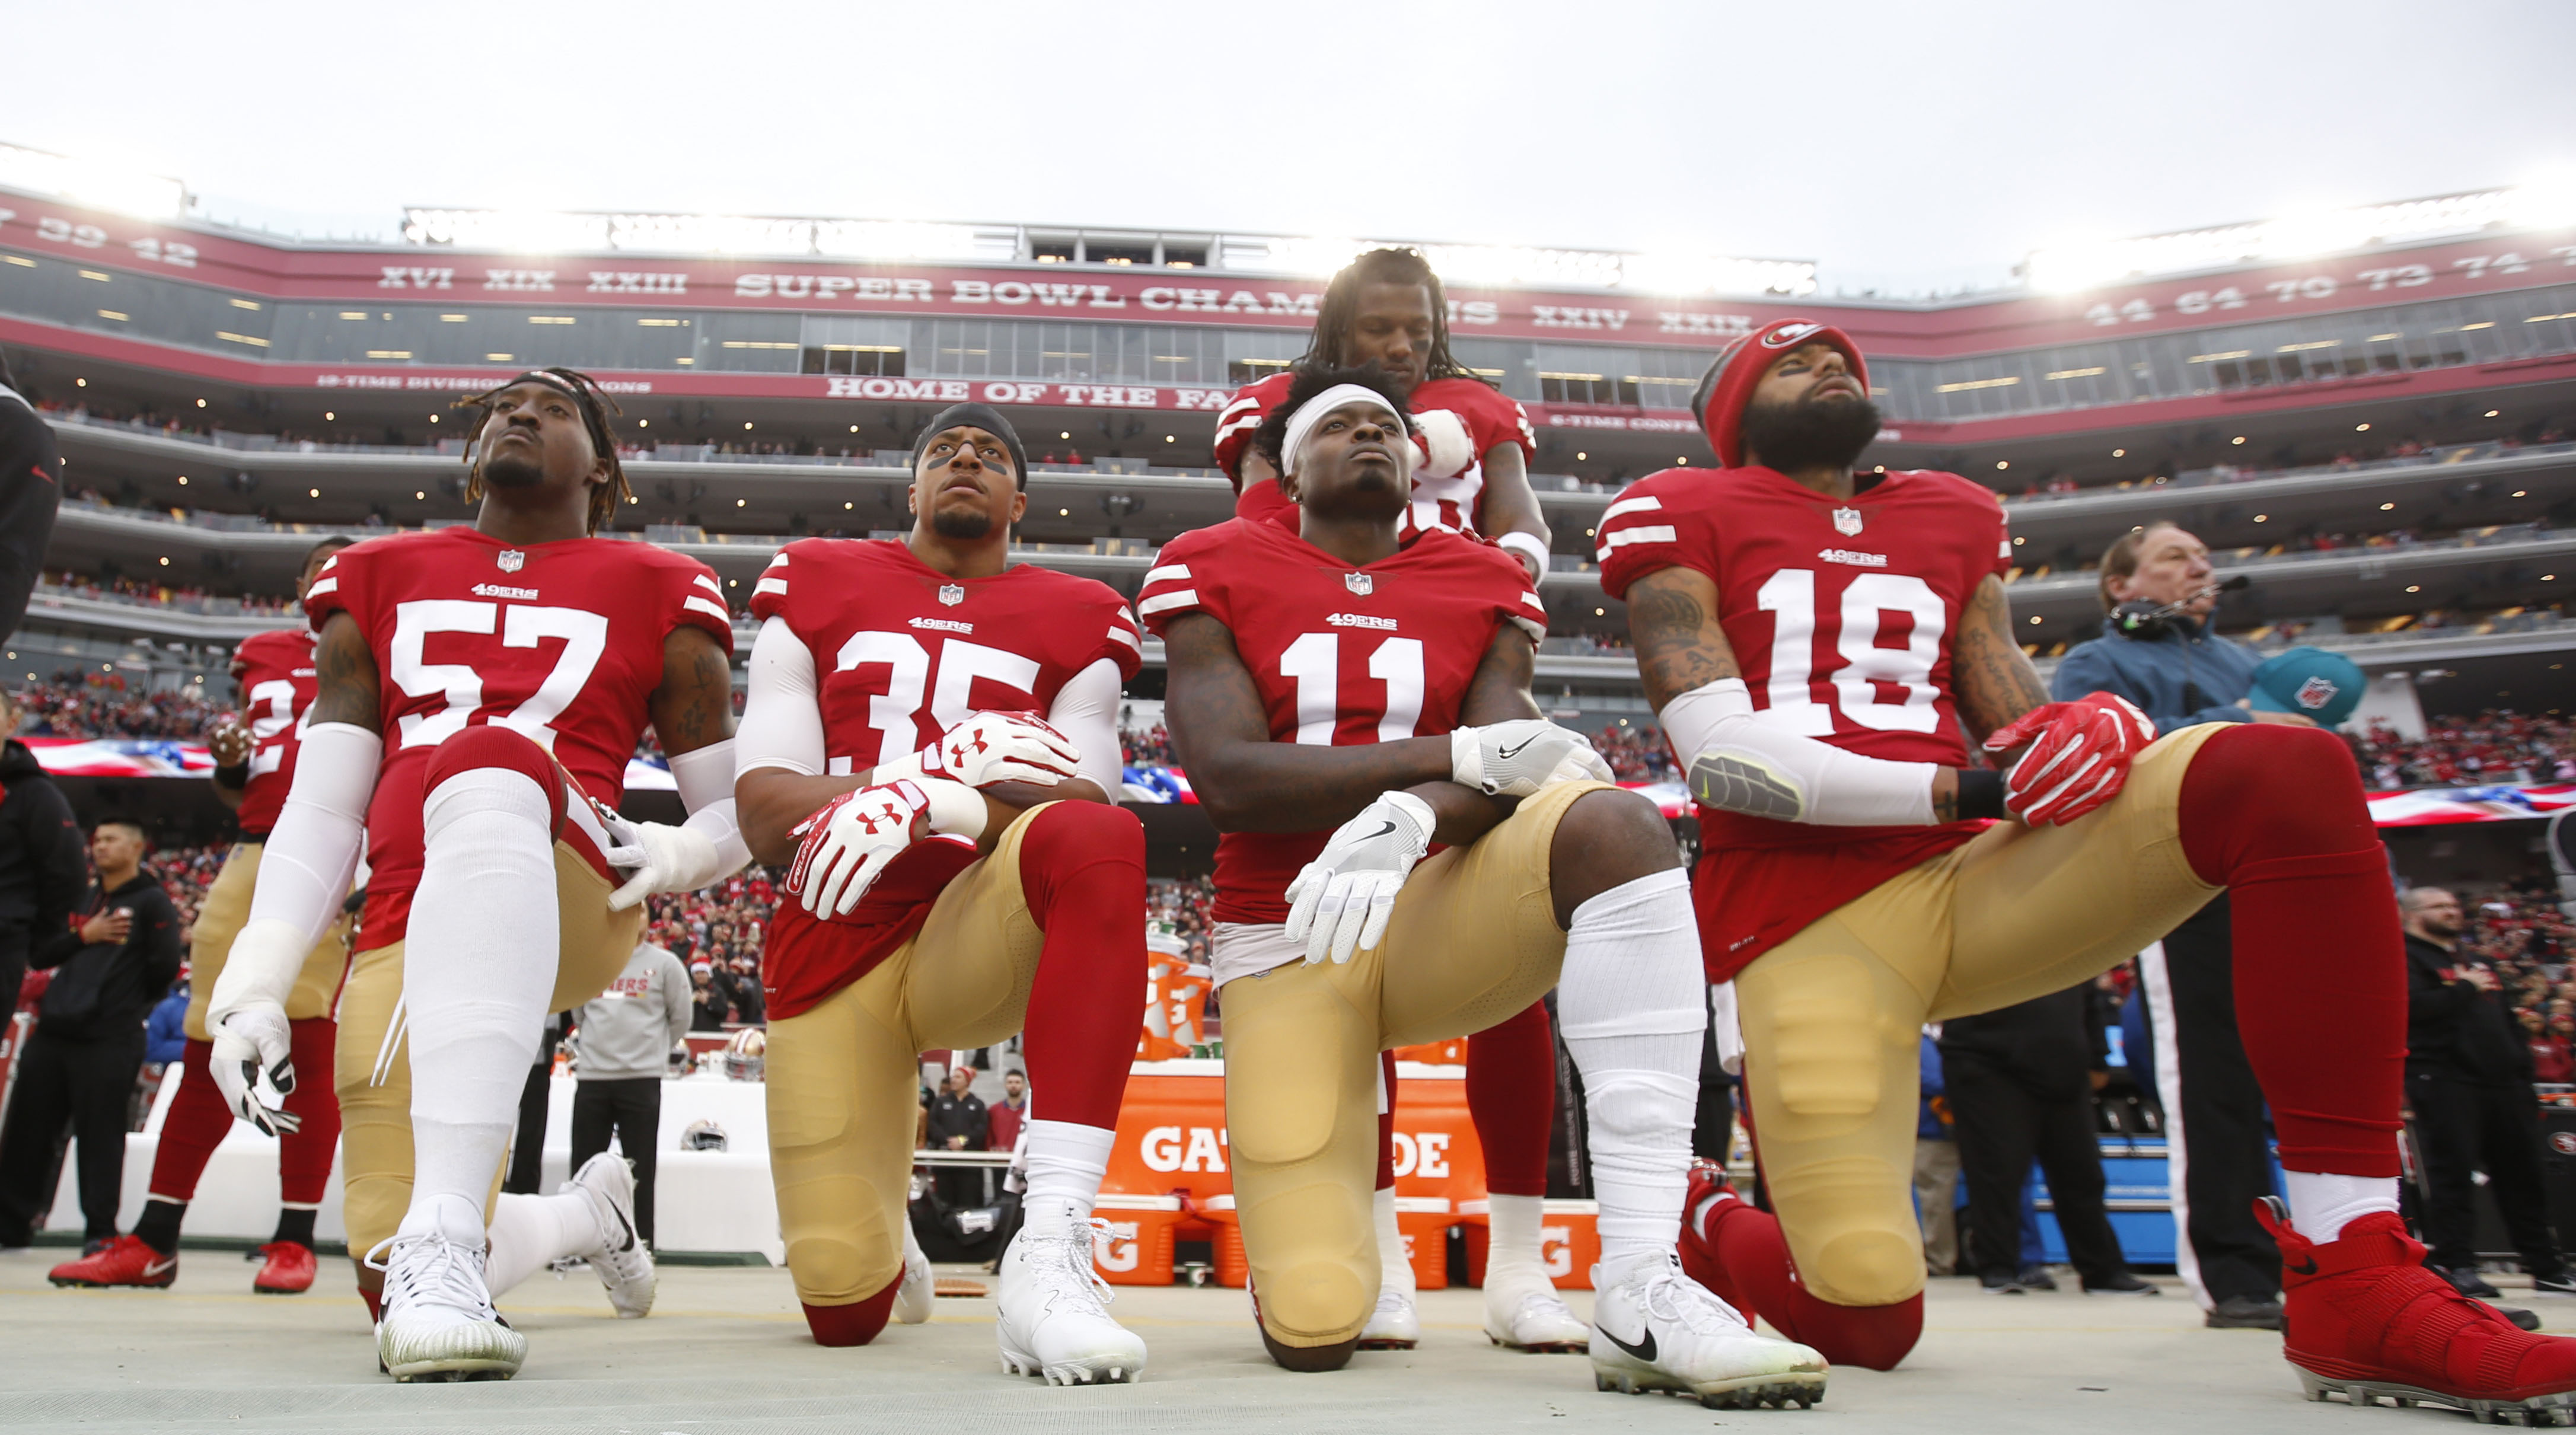 NFLPA files grievance over anthem policy